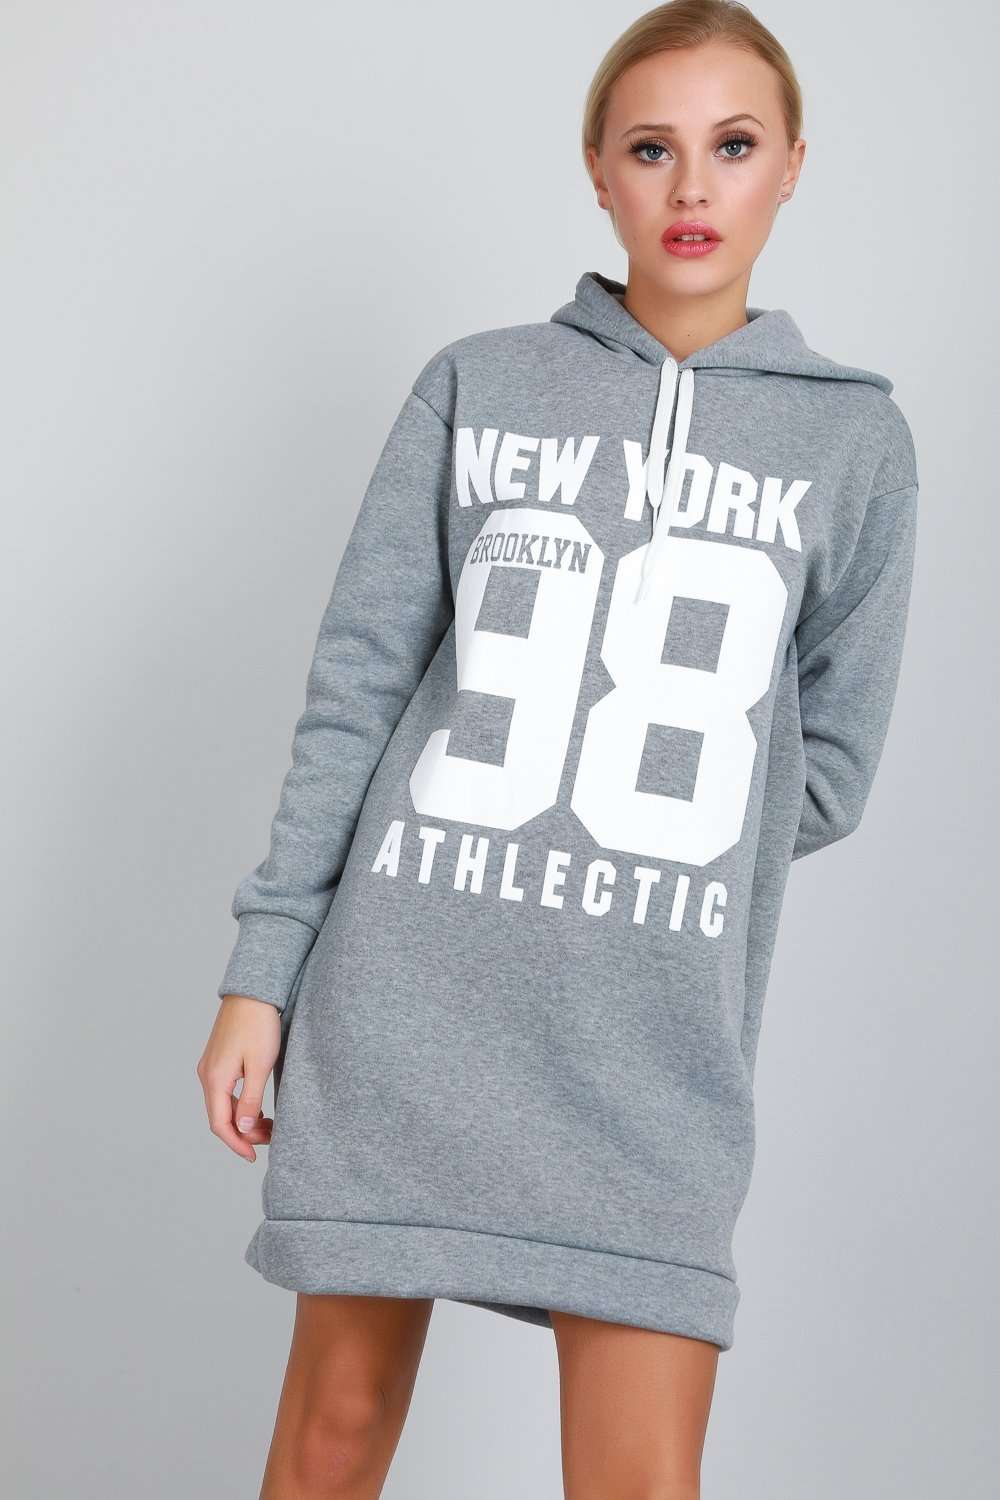 Caira New York Slogan Print Oversized Sweatshirt Dress - bejealous-com